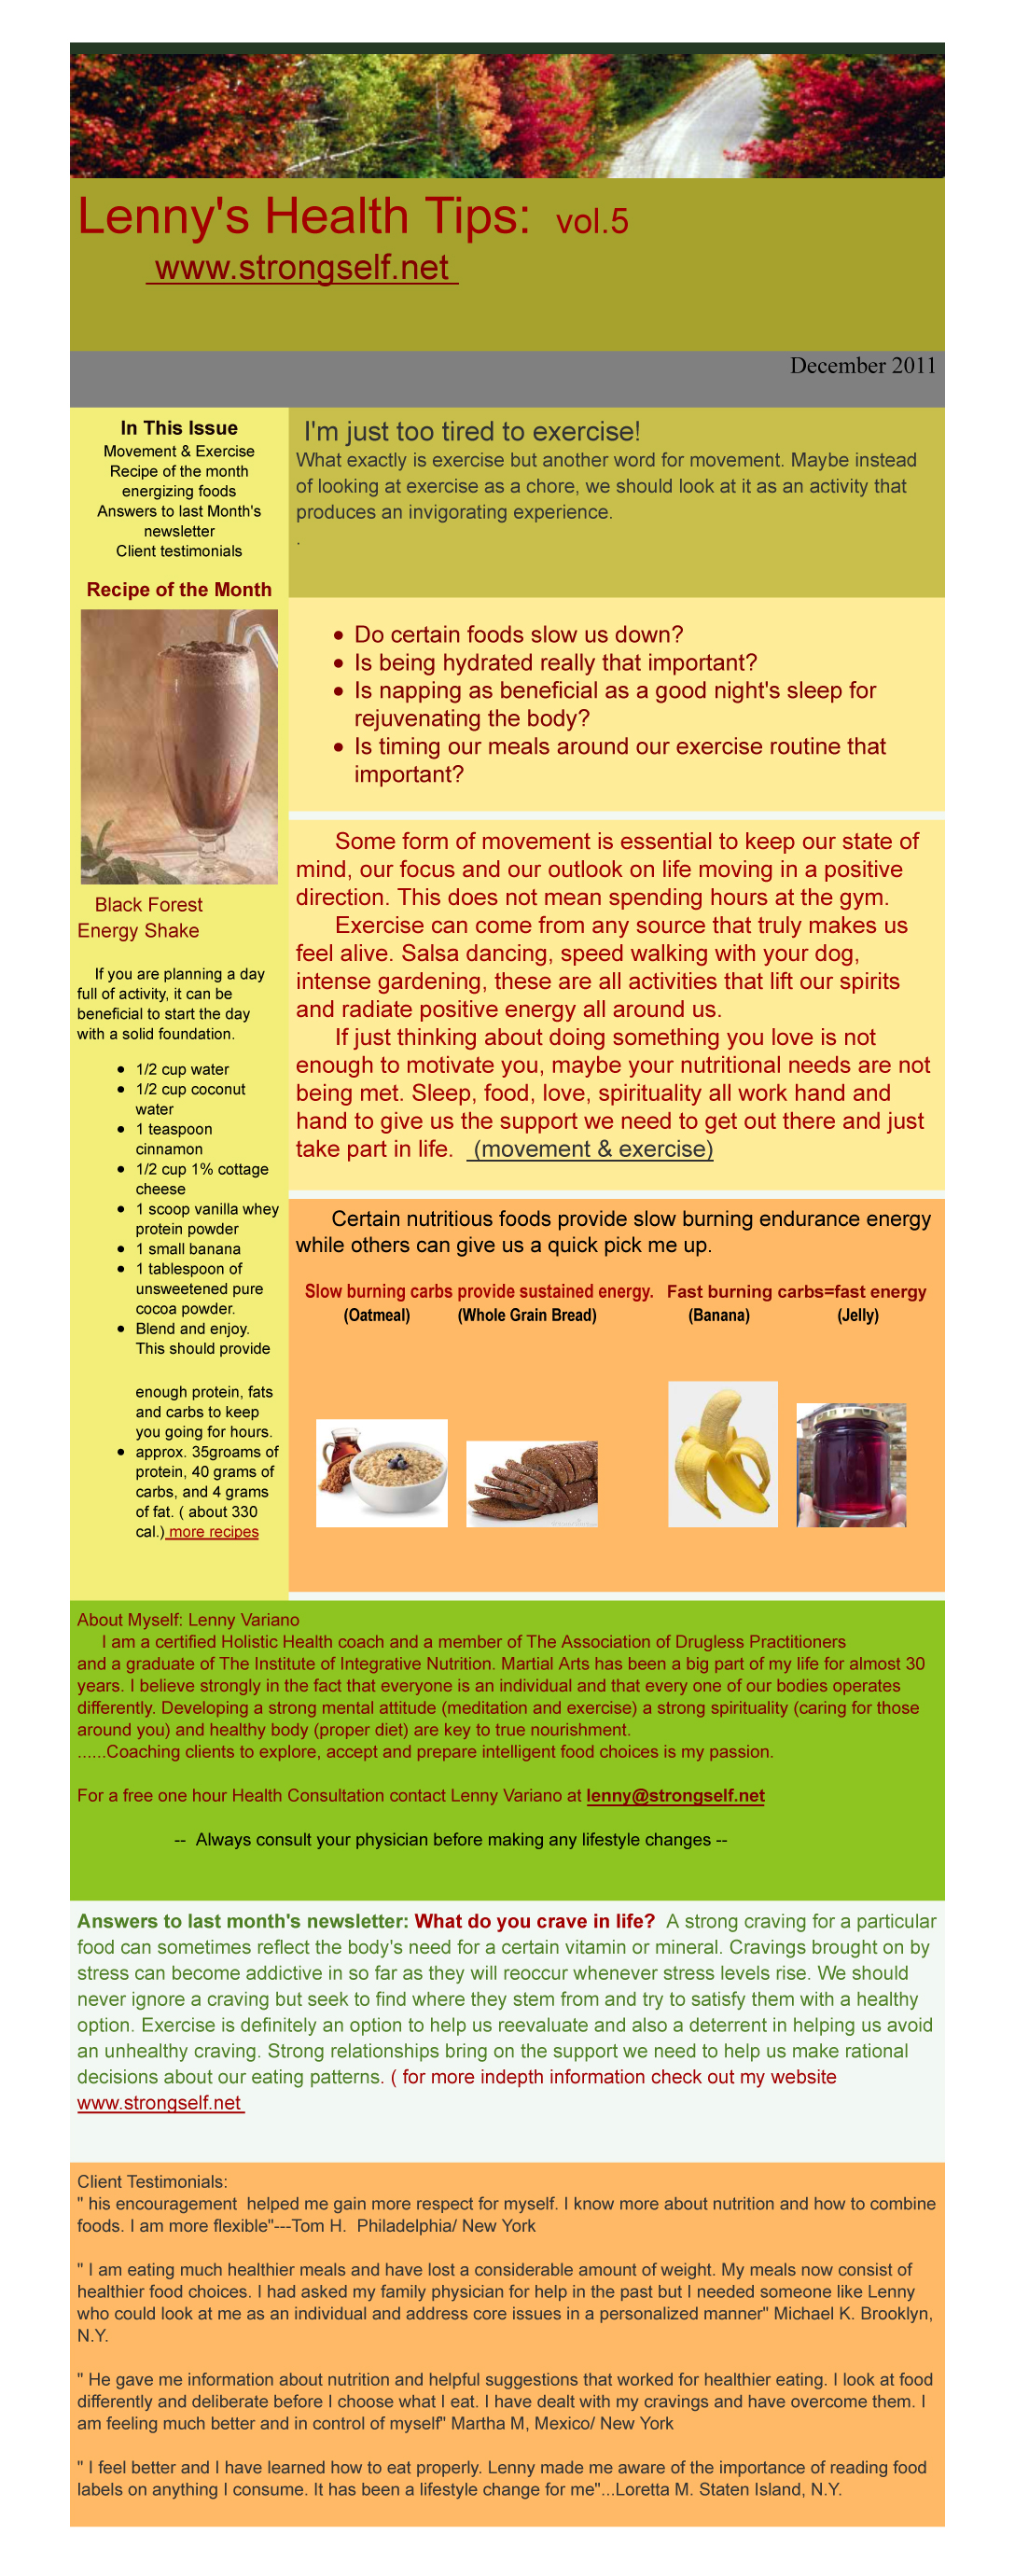 December 2011 Healthy Tips Newsletter from certified Holistic Health Counselor Lenny Variano